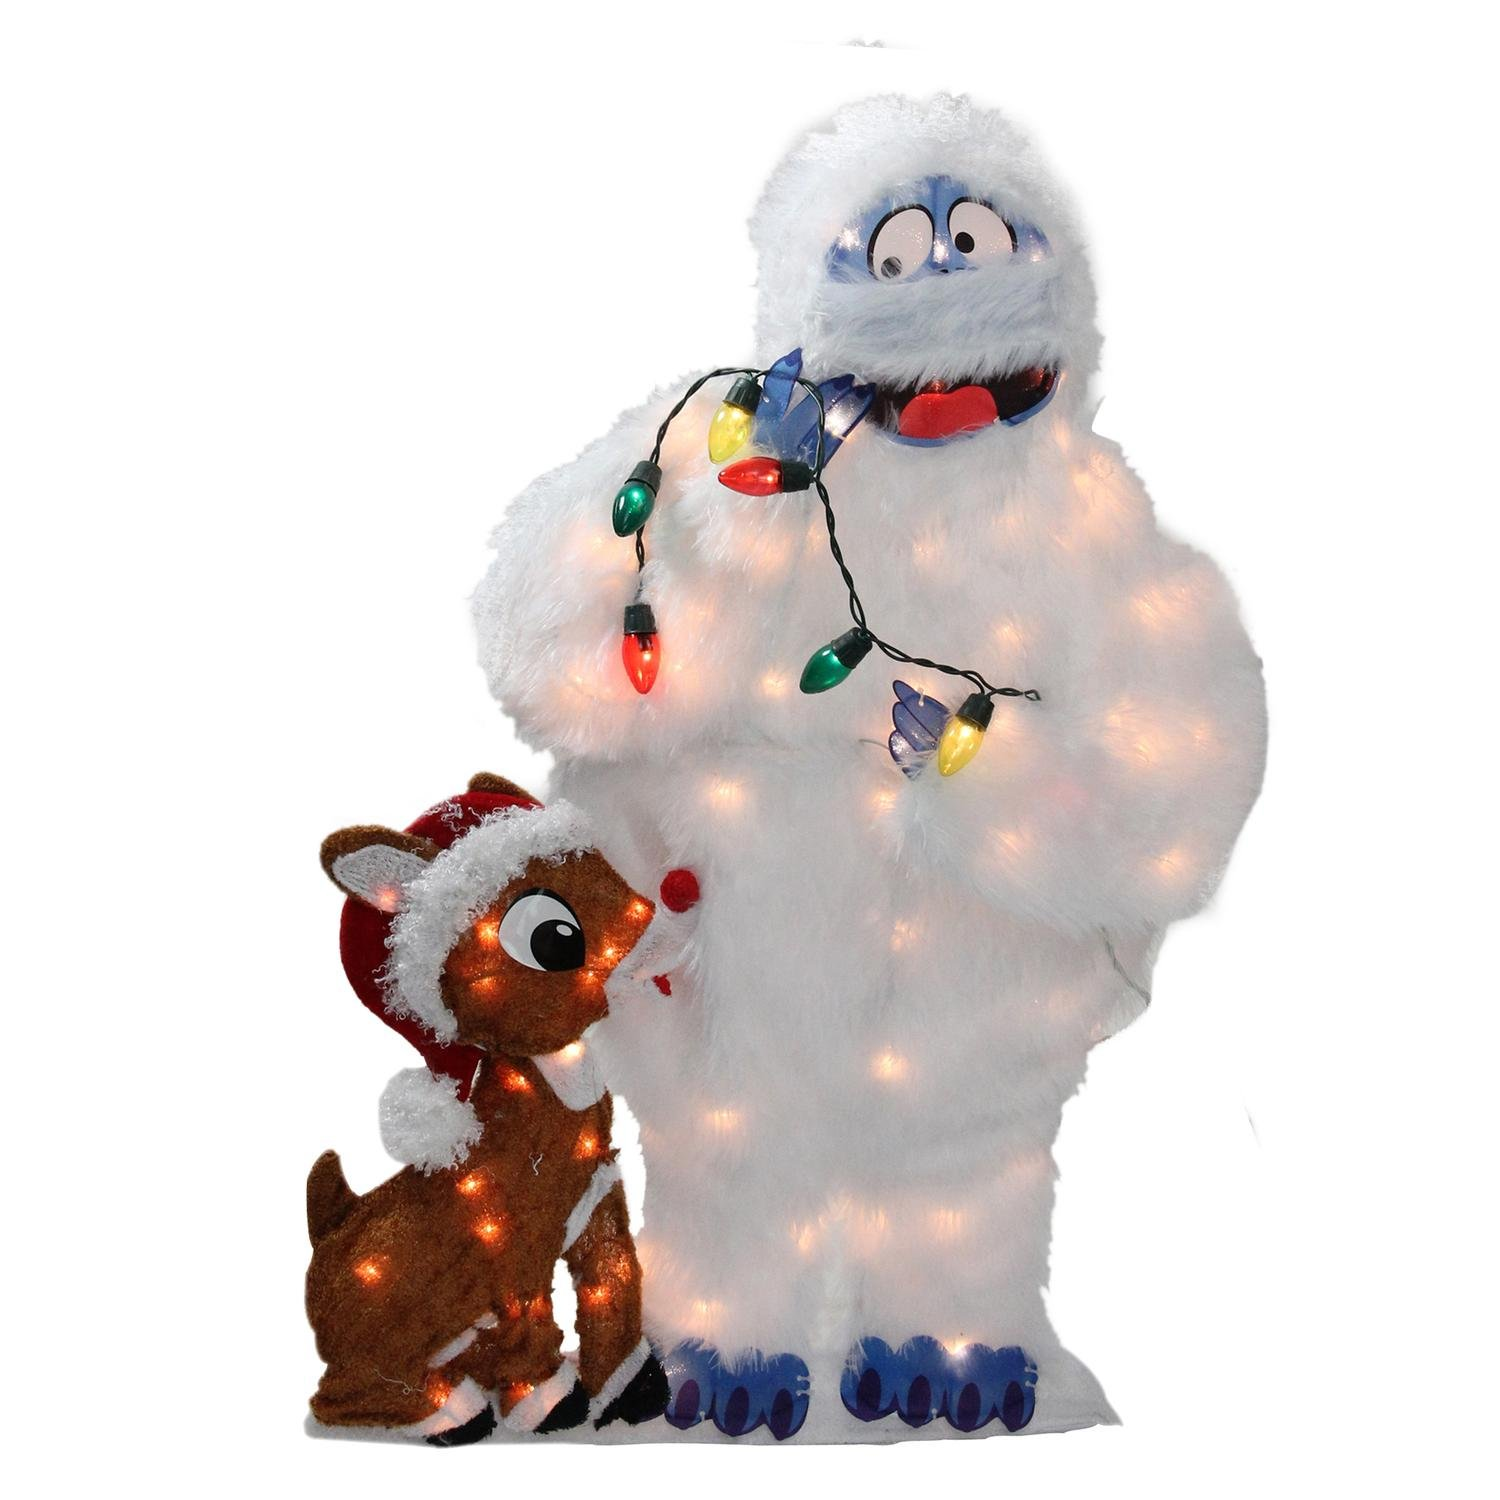 Rudolph the Red-Nosed Reindeer PW 20305 Rudolph and Bumble 2-D Outdoor Decoration - 32'' Pre-lit by Rudolph the Red Nosed Reindeer (Image #1)